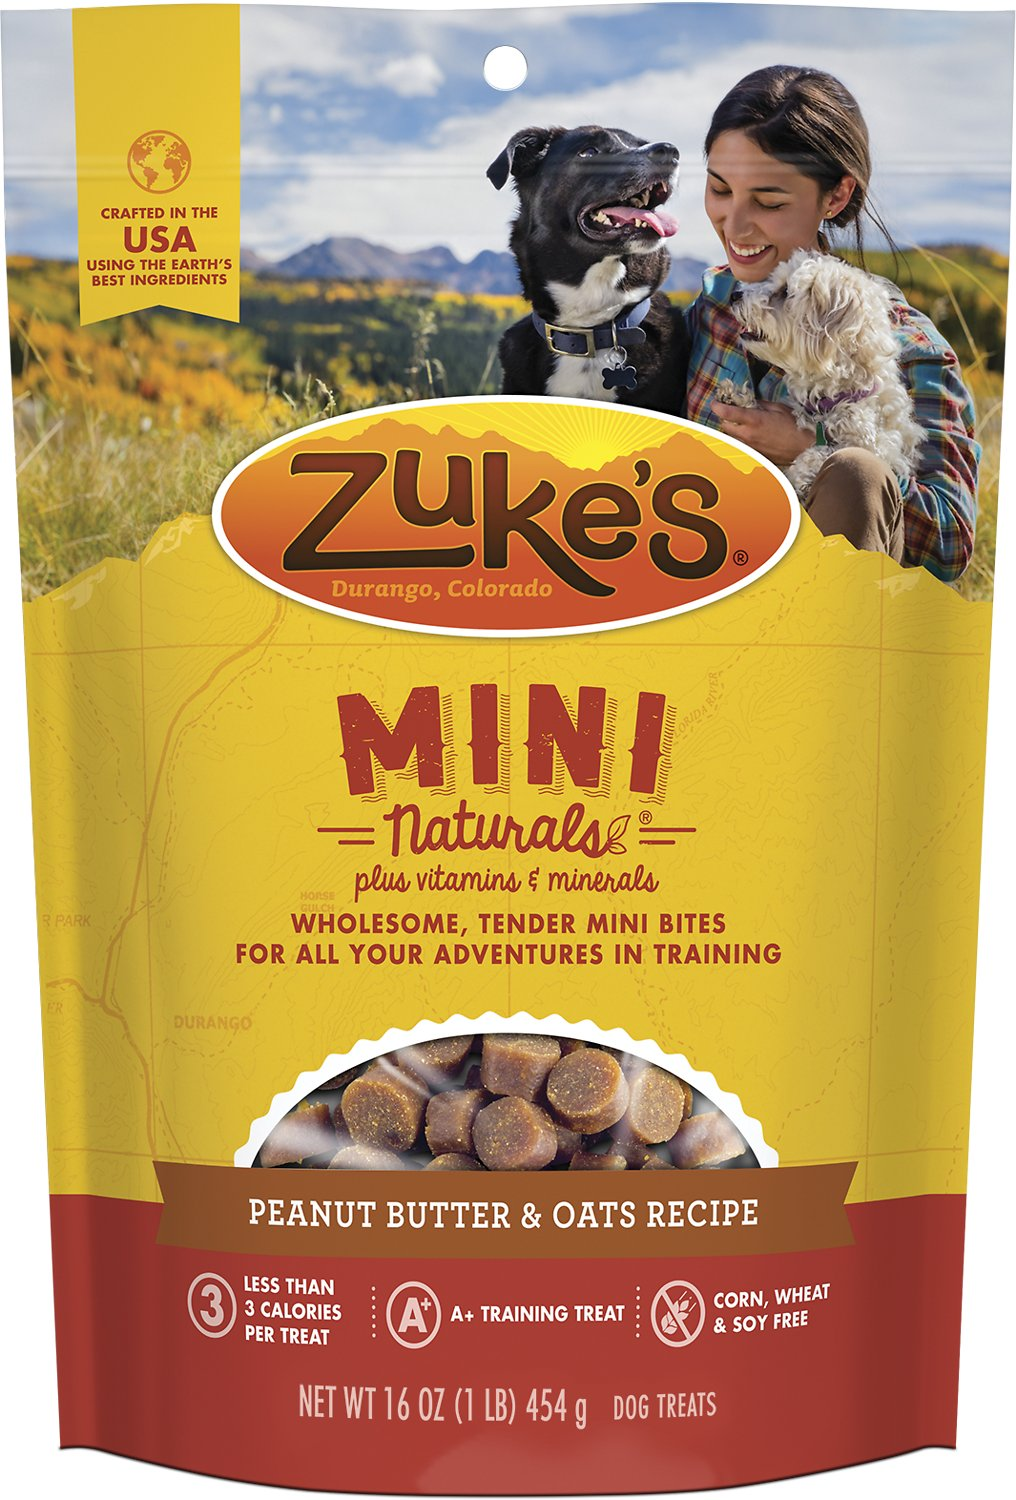 Zuke's Mini Naturals Peanut Butter & Oats Recipe Dog Treats Image